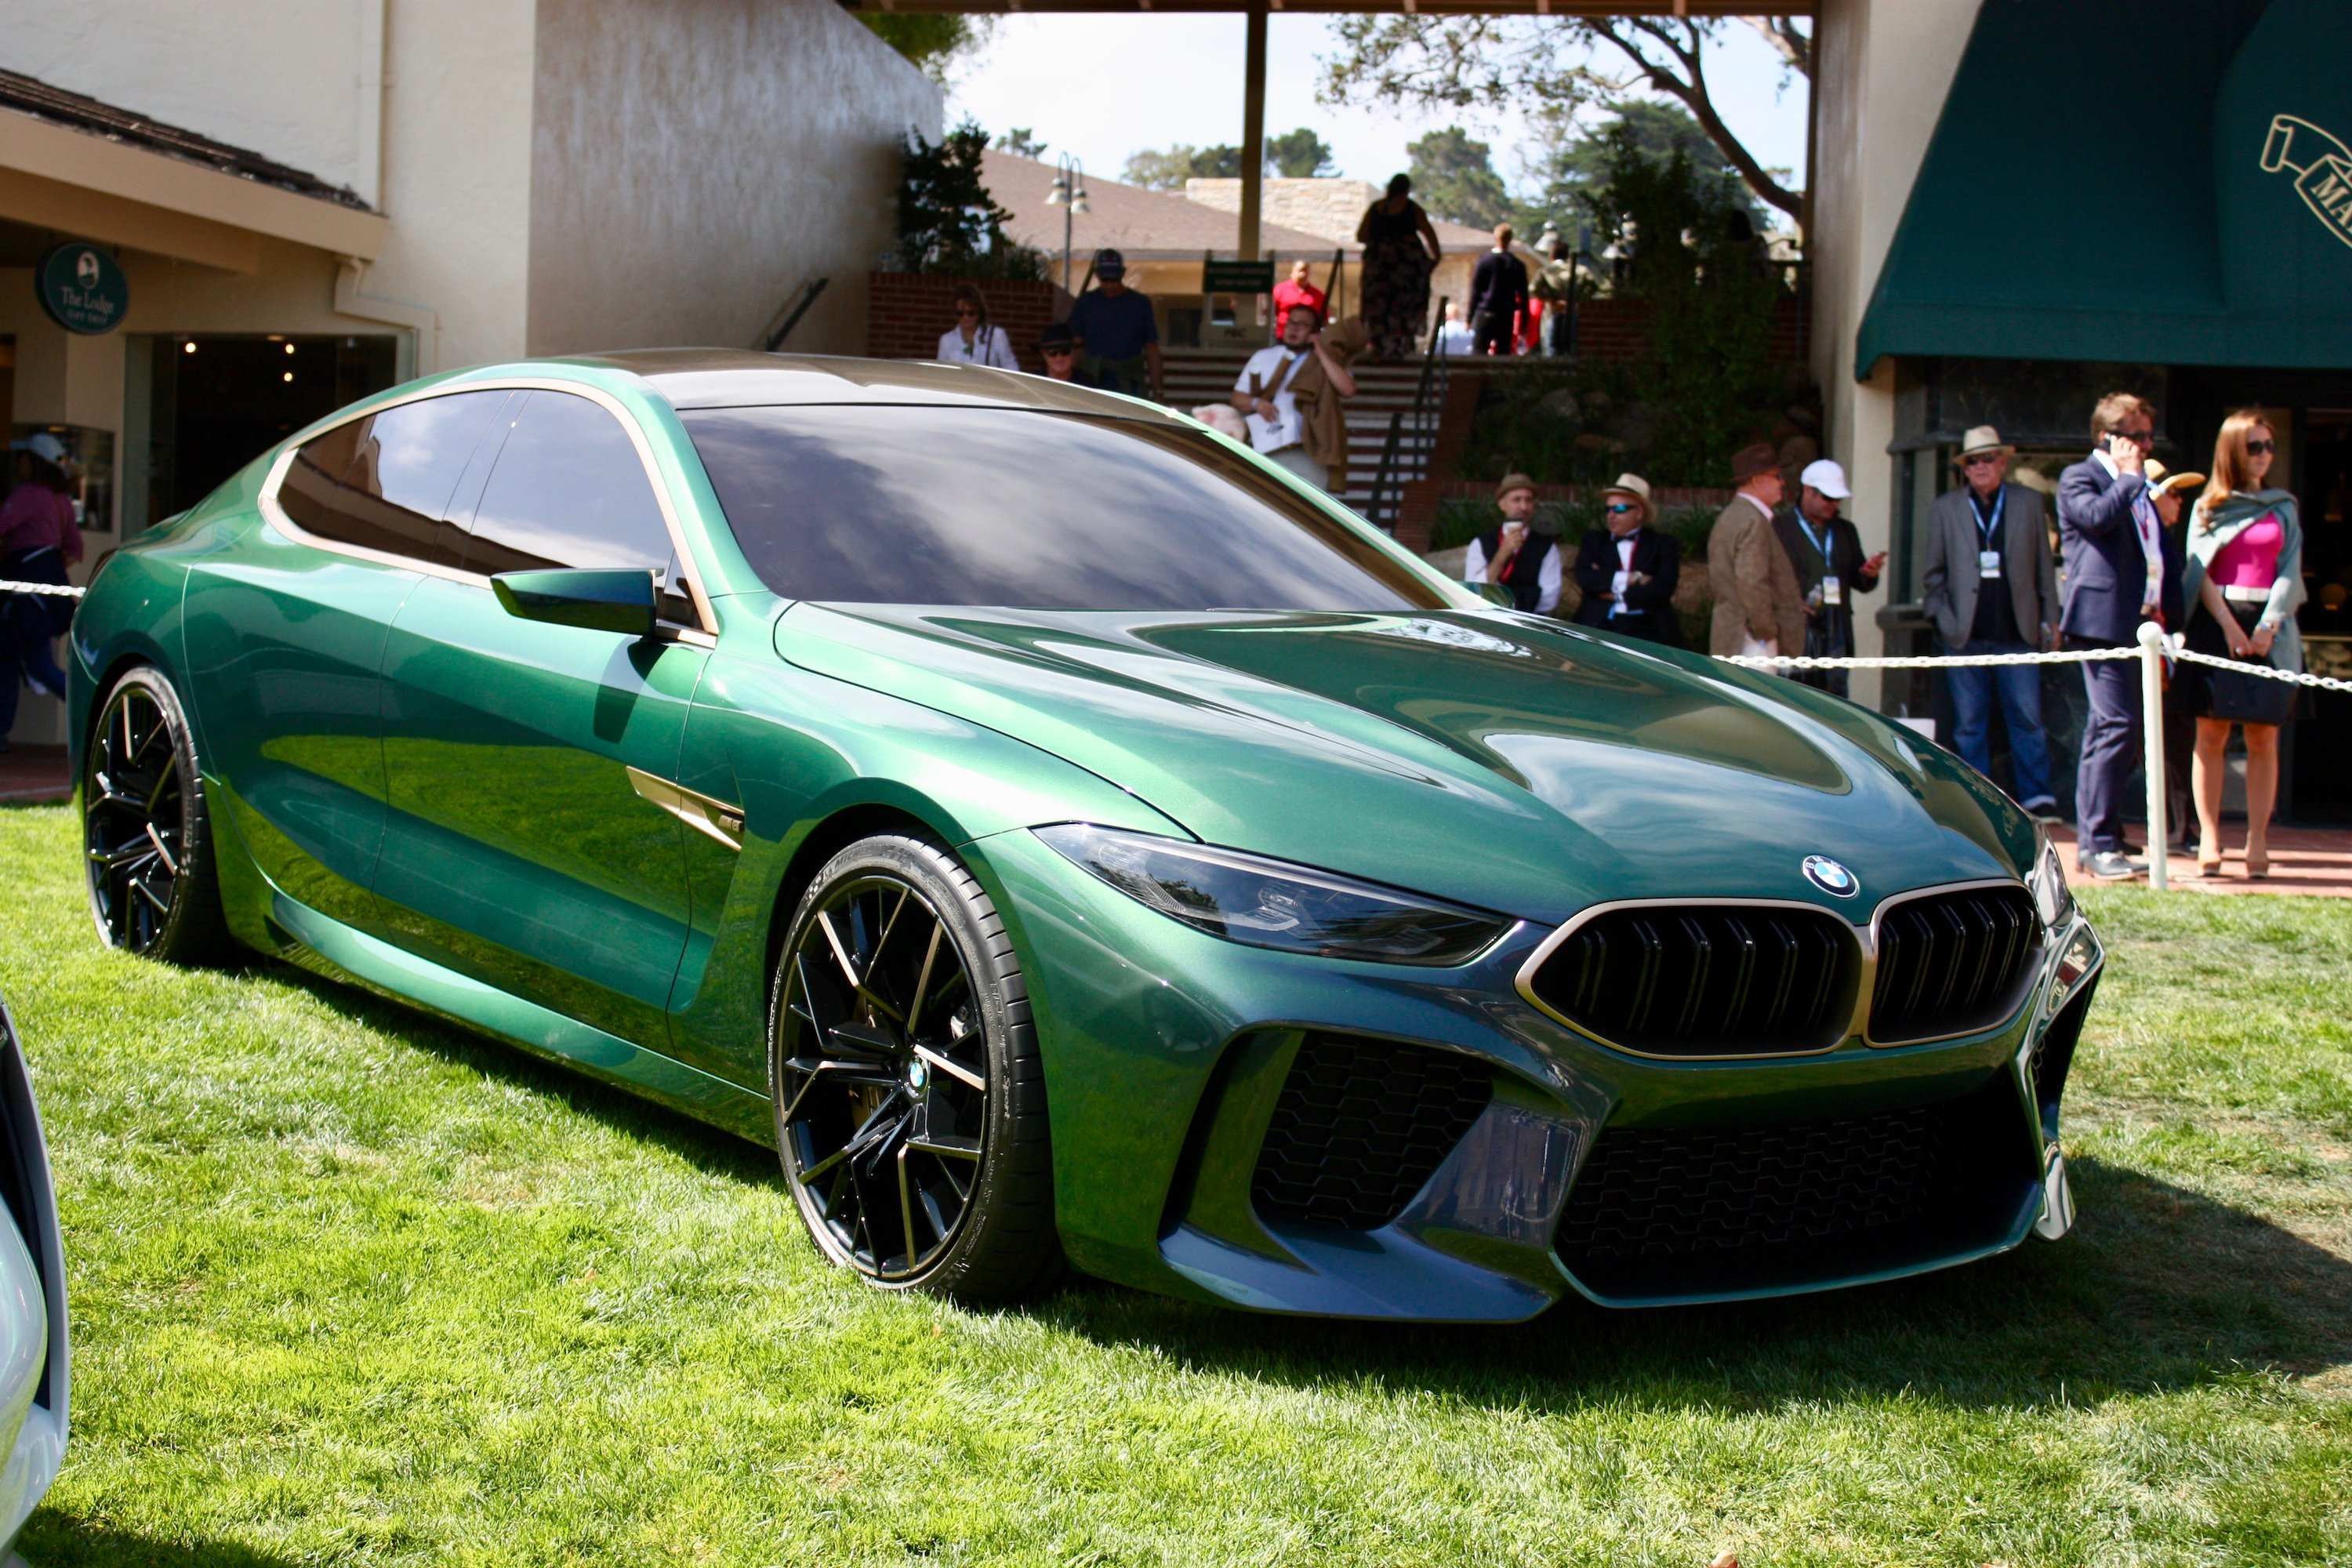 67 Gallery of 2020 BMW M8 Style for 2020 BMW M8